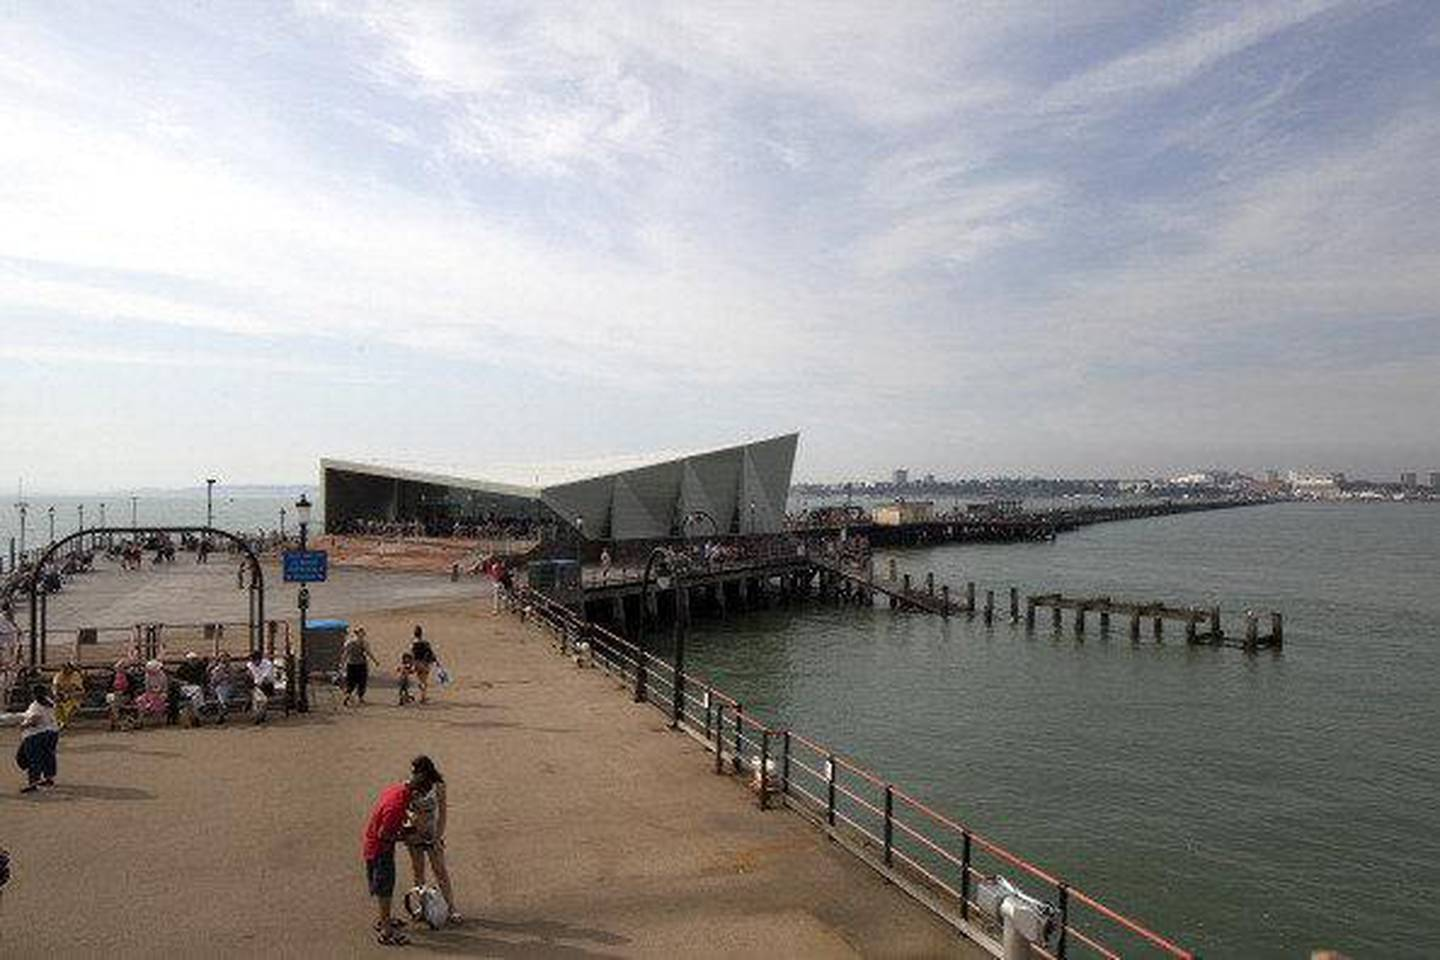 Showing the full length of the pier and Southend, Southend Pier Cultural Centre, Southend, United Kingdom, Architect: White Architects, 2012, Main exterior with people taken from the lifeboat station. (Photo by View Pictures/UIG via Getty Images)